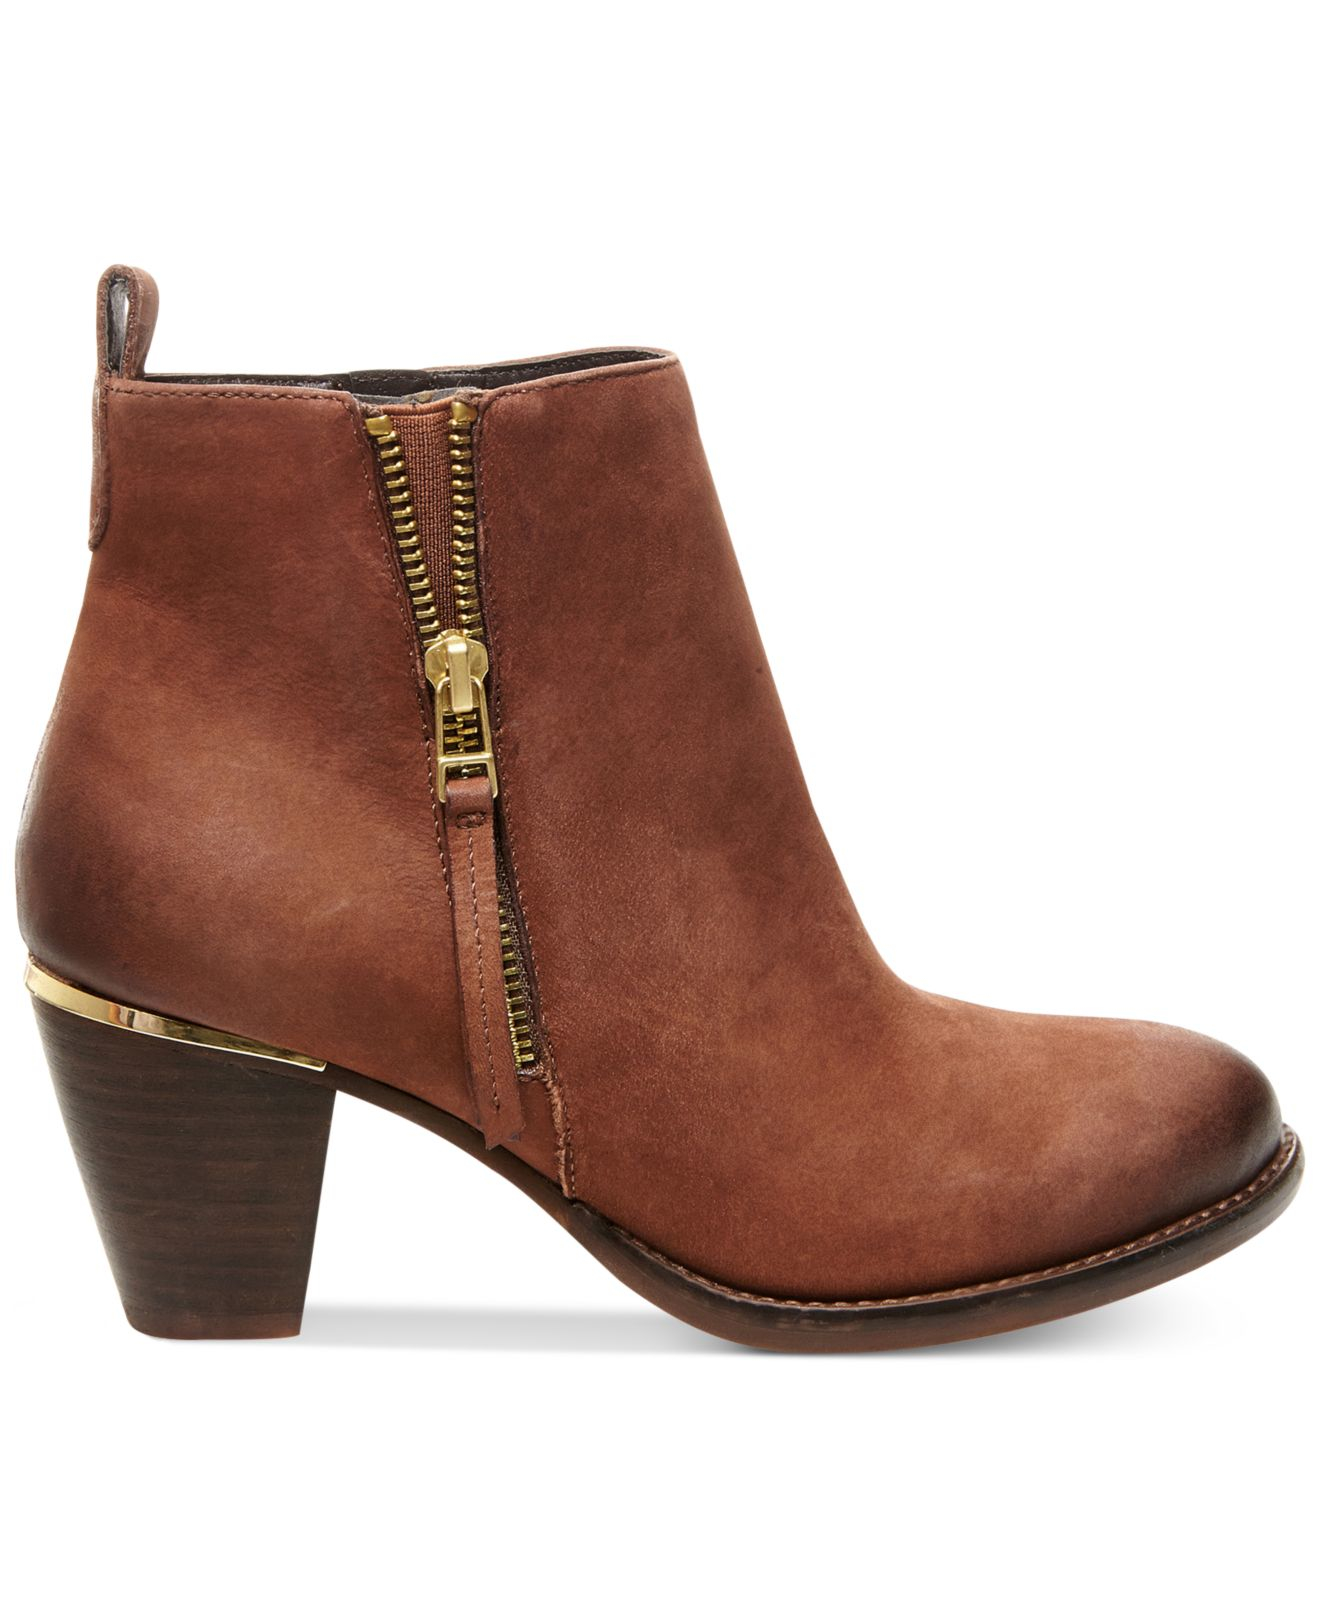 32e2fc99998 Steve Madden Brown Women's Wantagh Ankle Booties